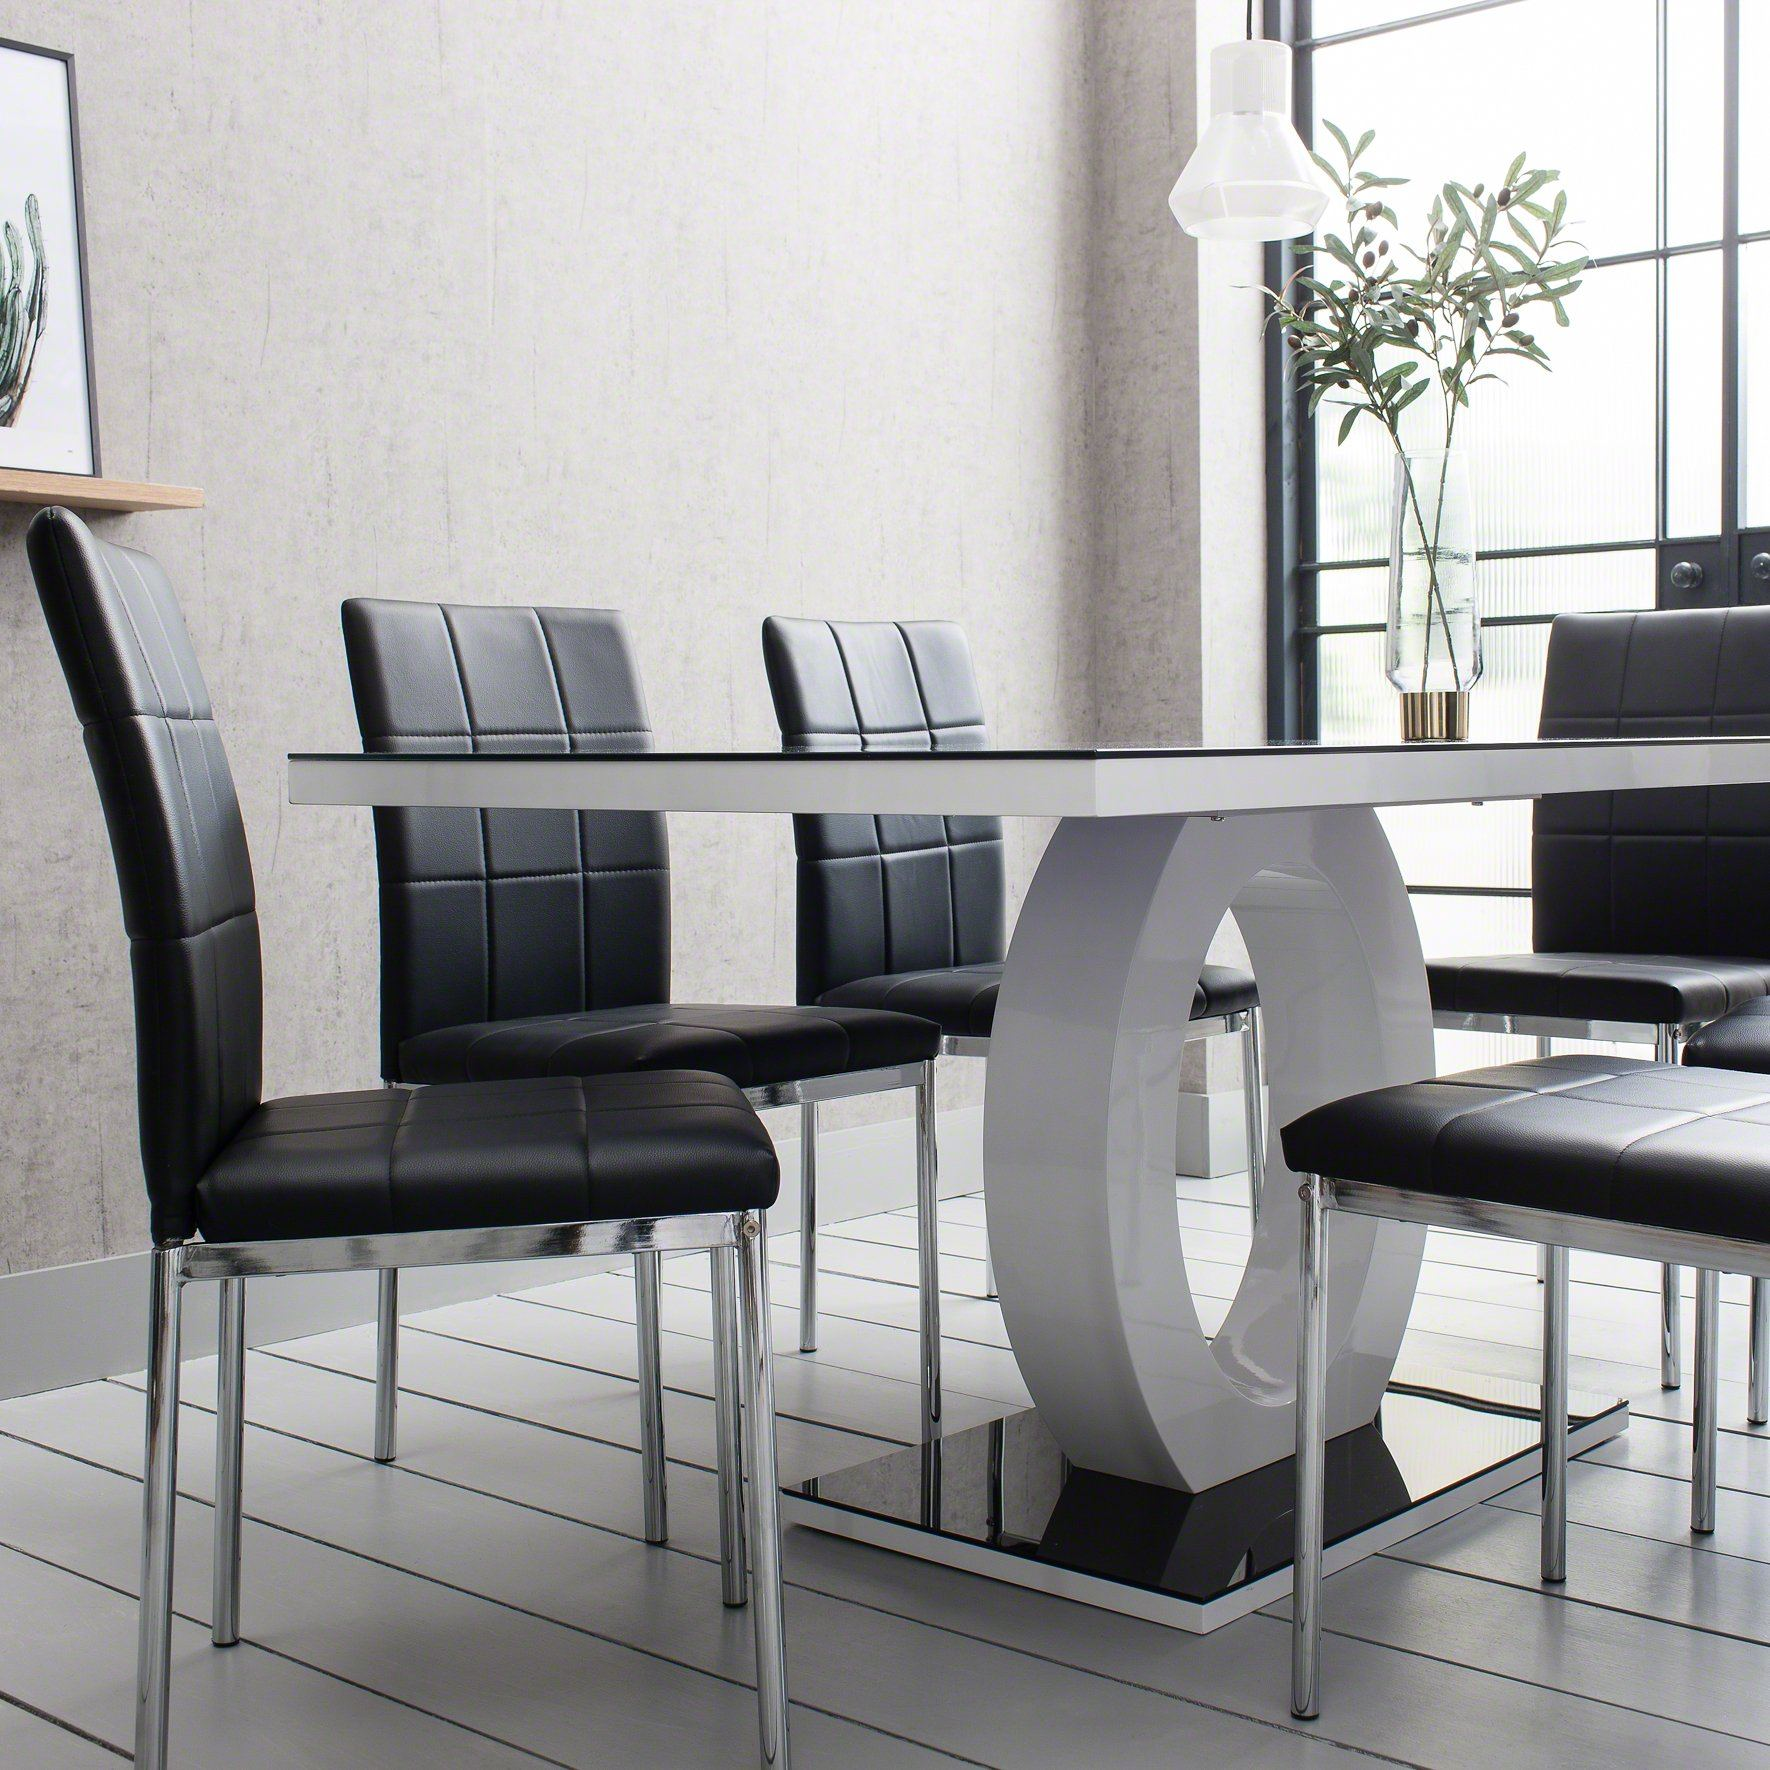 Fabulous Glass Dining Table With 6 Faux Leather Chairs Download Free Architecture Designs Scobabritishbridgeorg